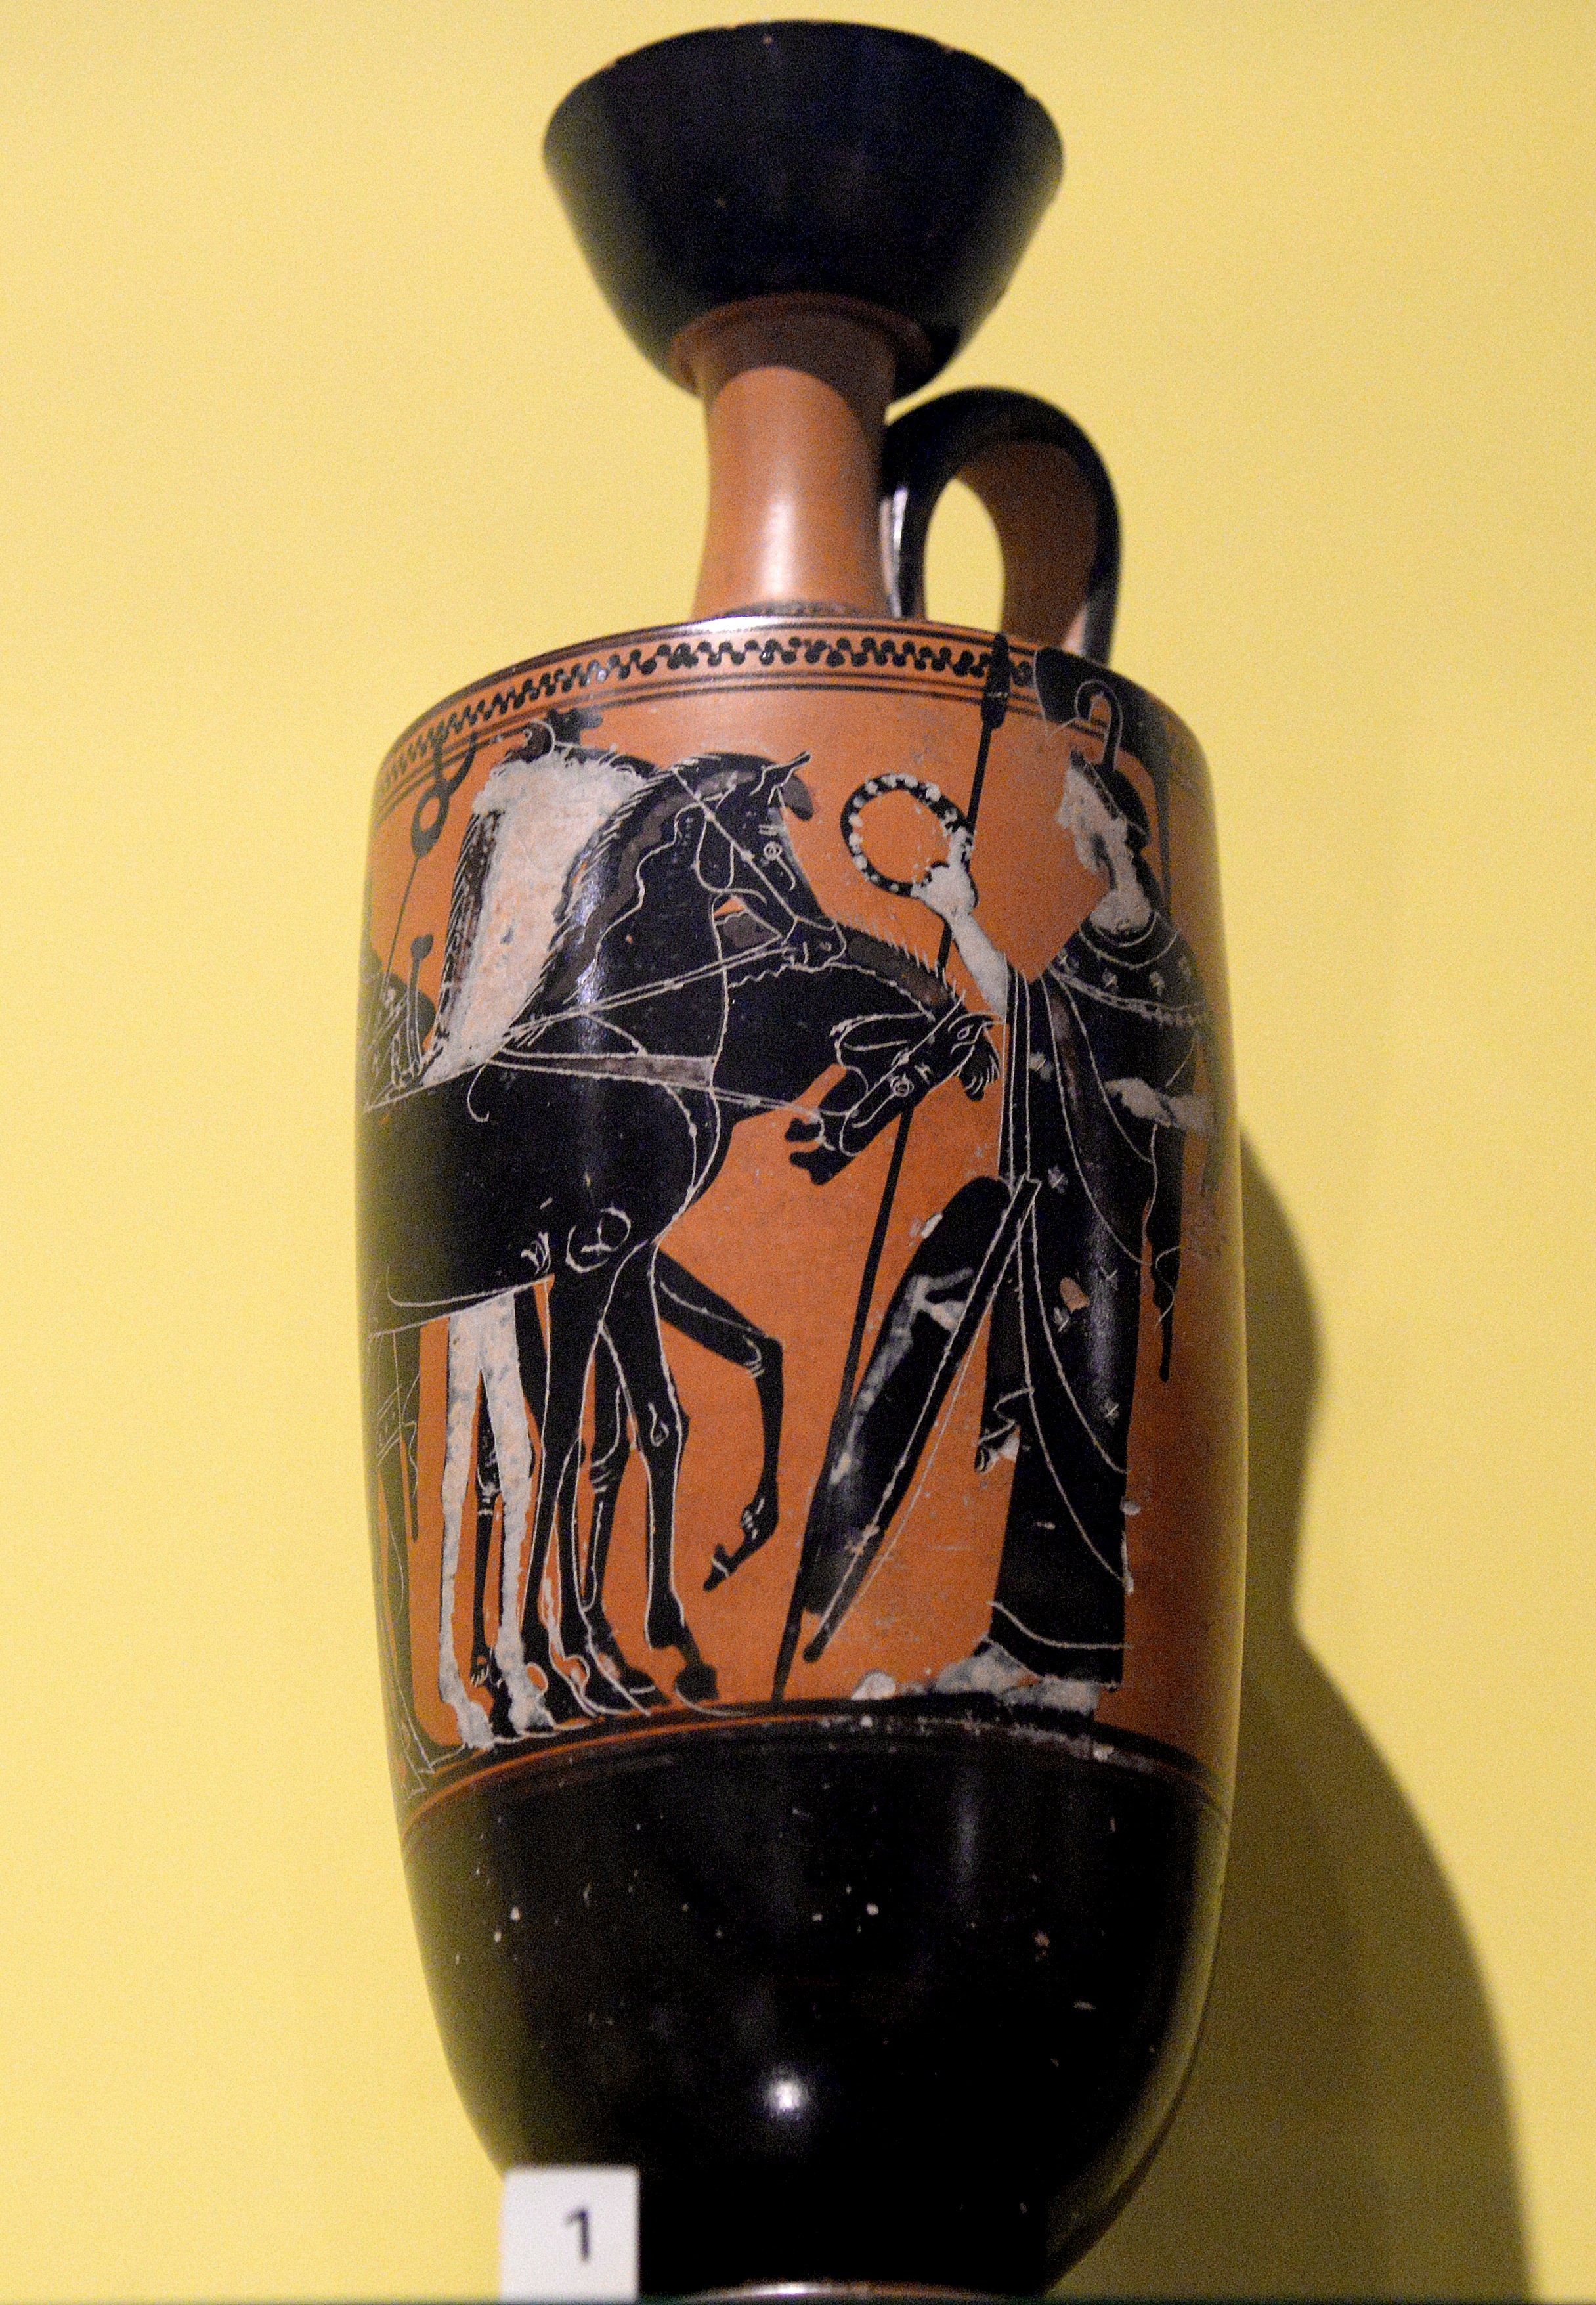 Lekythos gods with chariots illustration ancient history oil especially olive oil was stored in specialized greek pottery lekythos pleural lekythoi many lekythoi were found inside tombs they were used to reviewsmspy